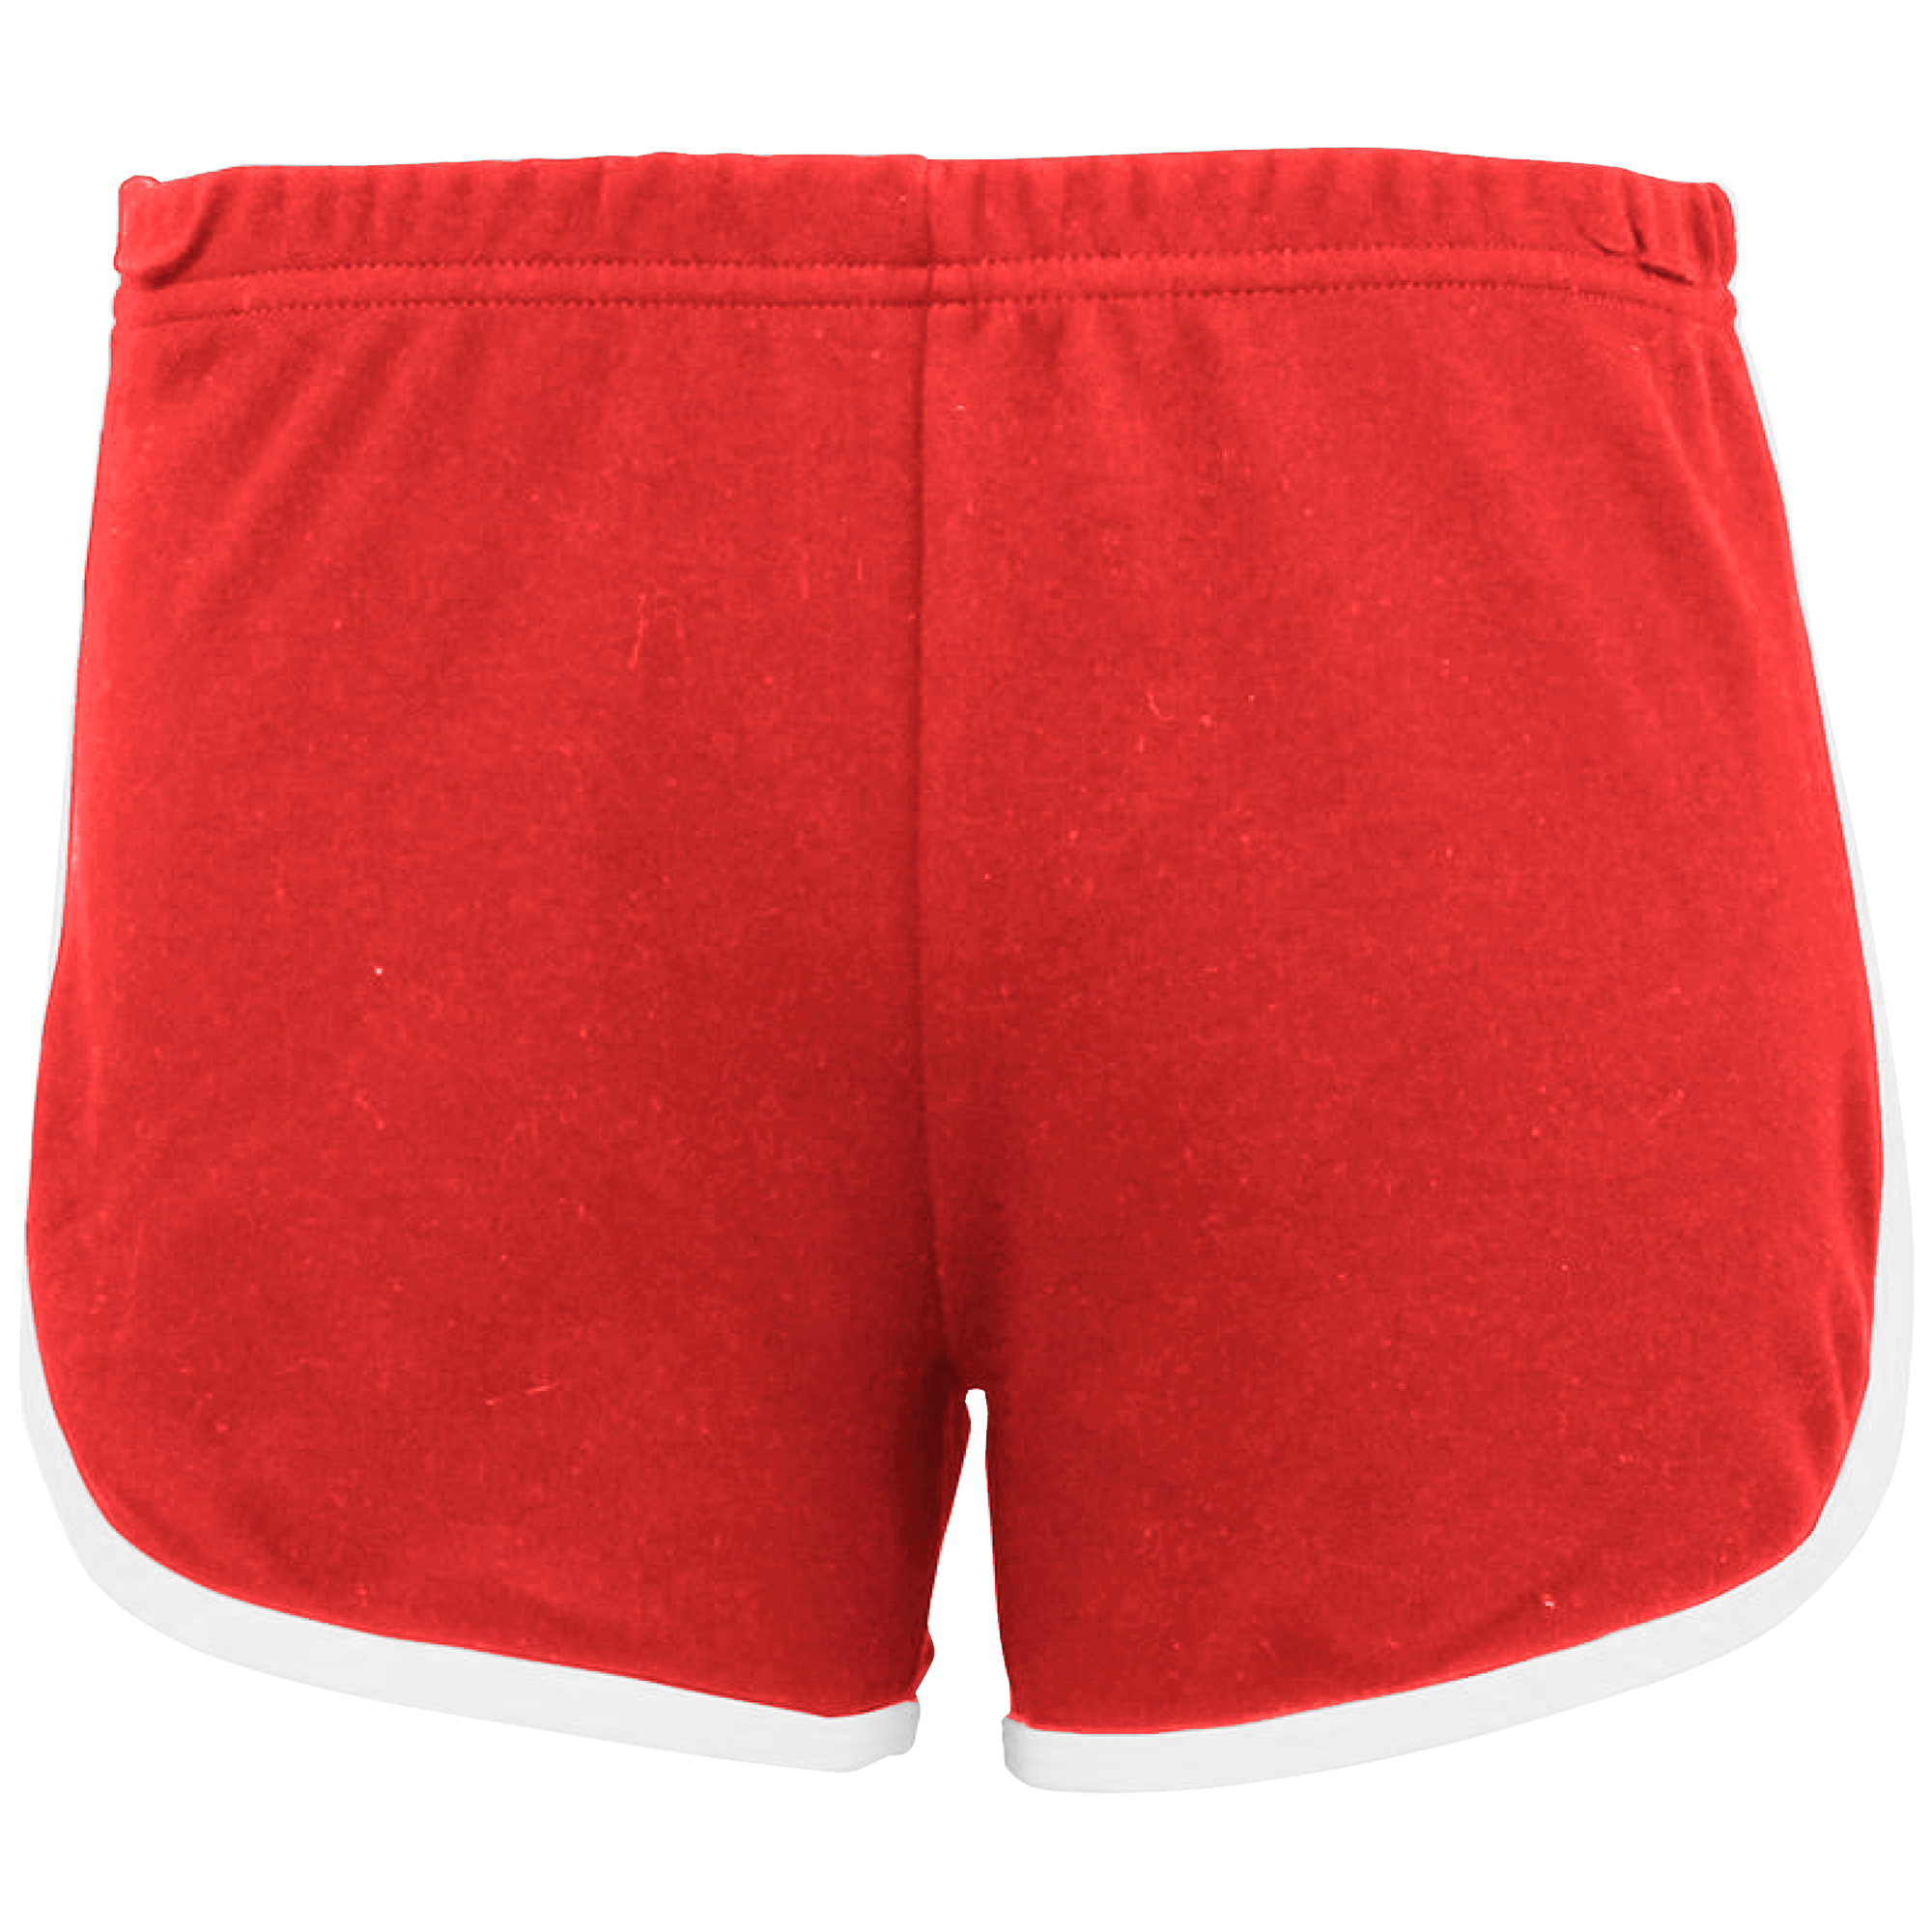 American-Apparel-Womens-Ladies-Cotton-Casual-Sports-Shorts-RW4012